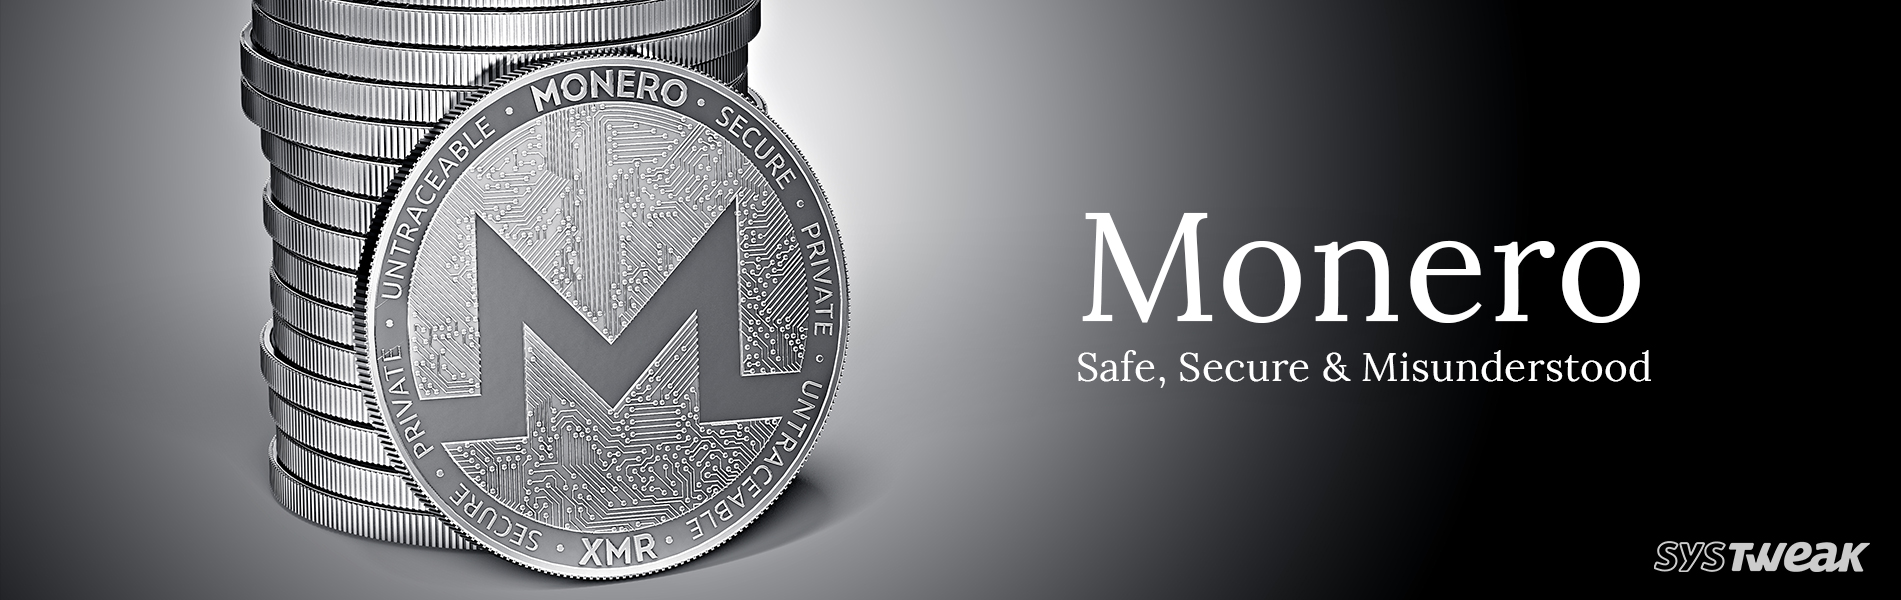 Monero – Good Cryptocurrency Gone Bad?